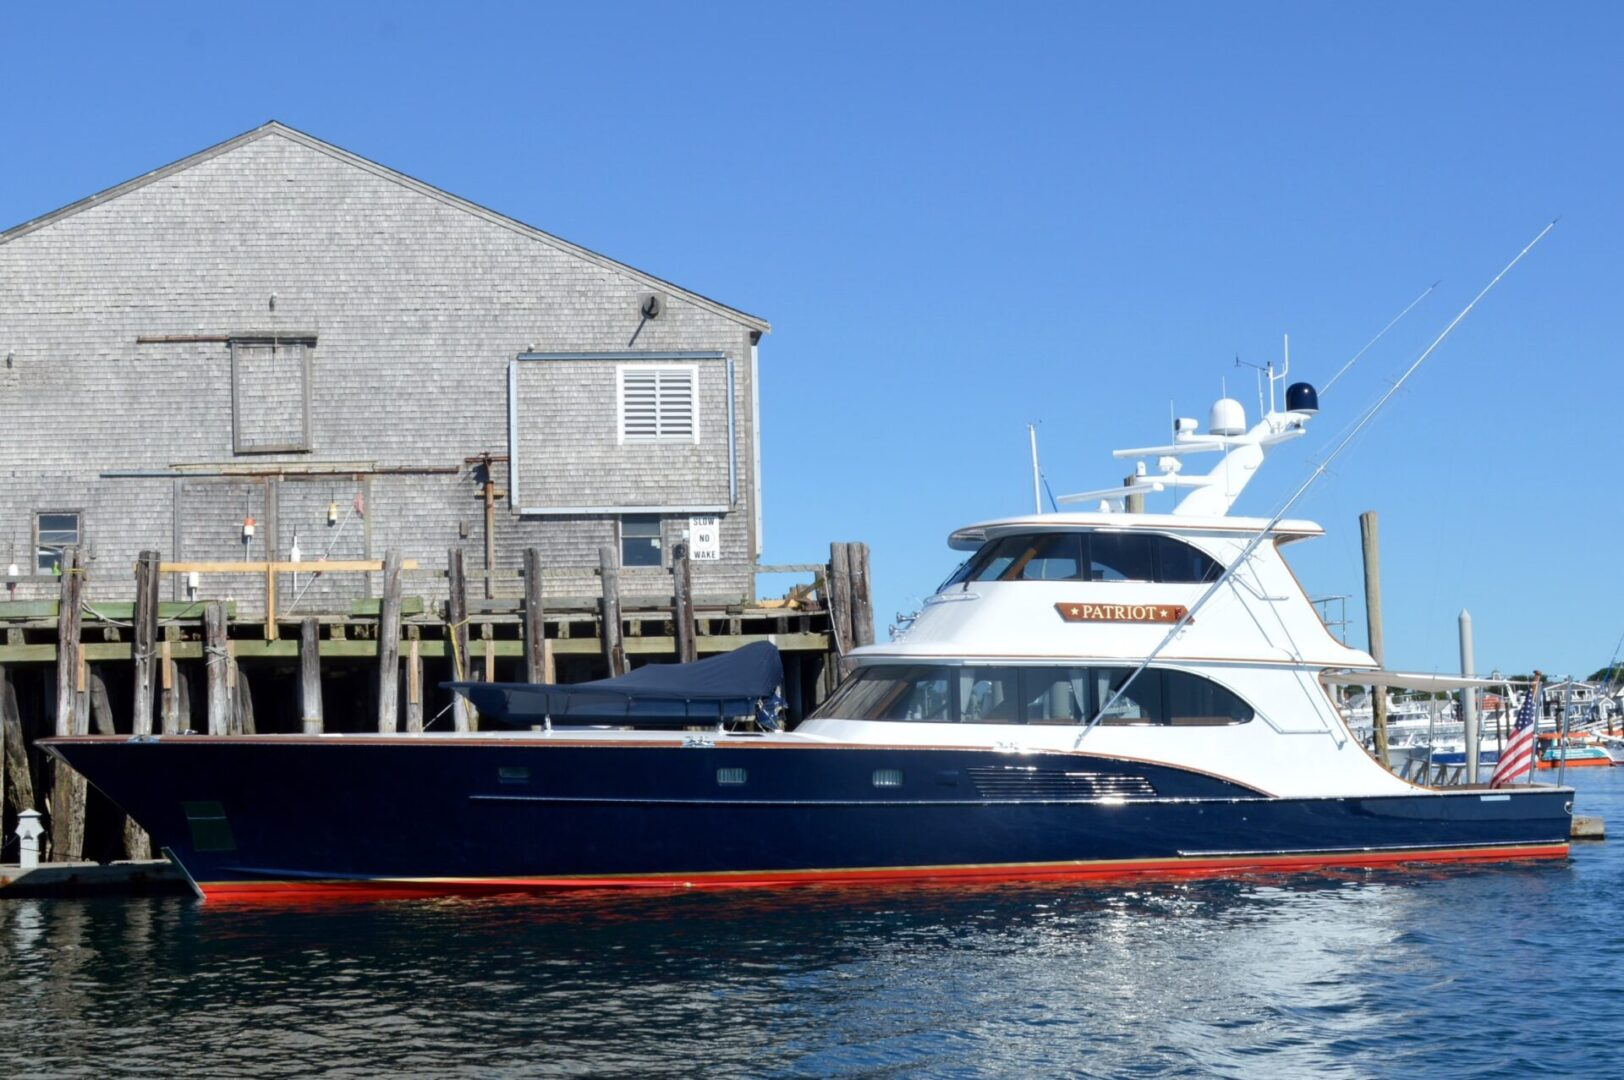 A blue and white Patriot yacht